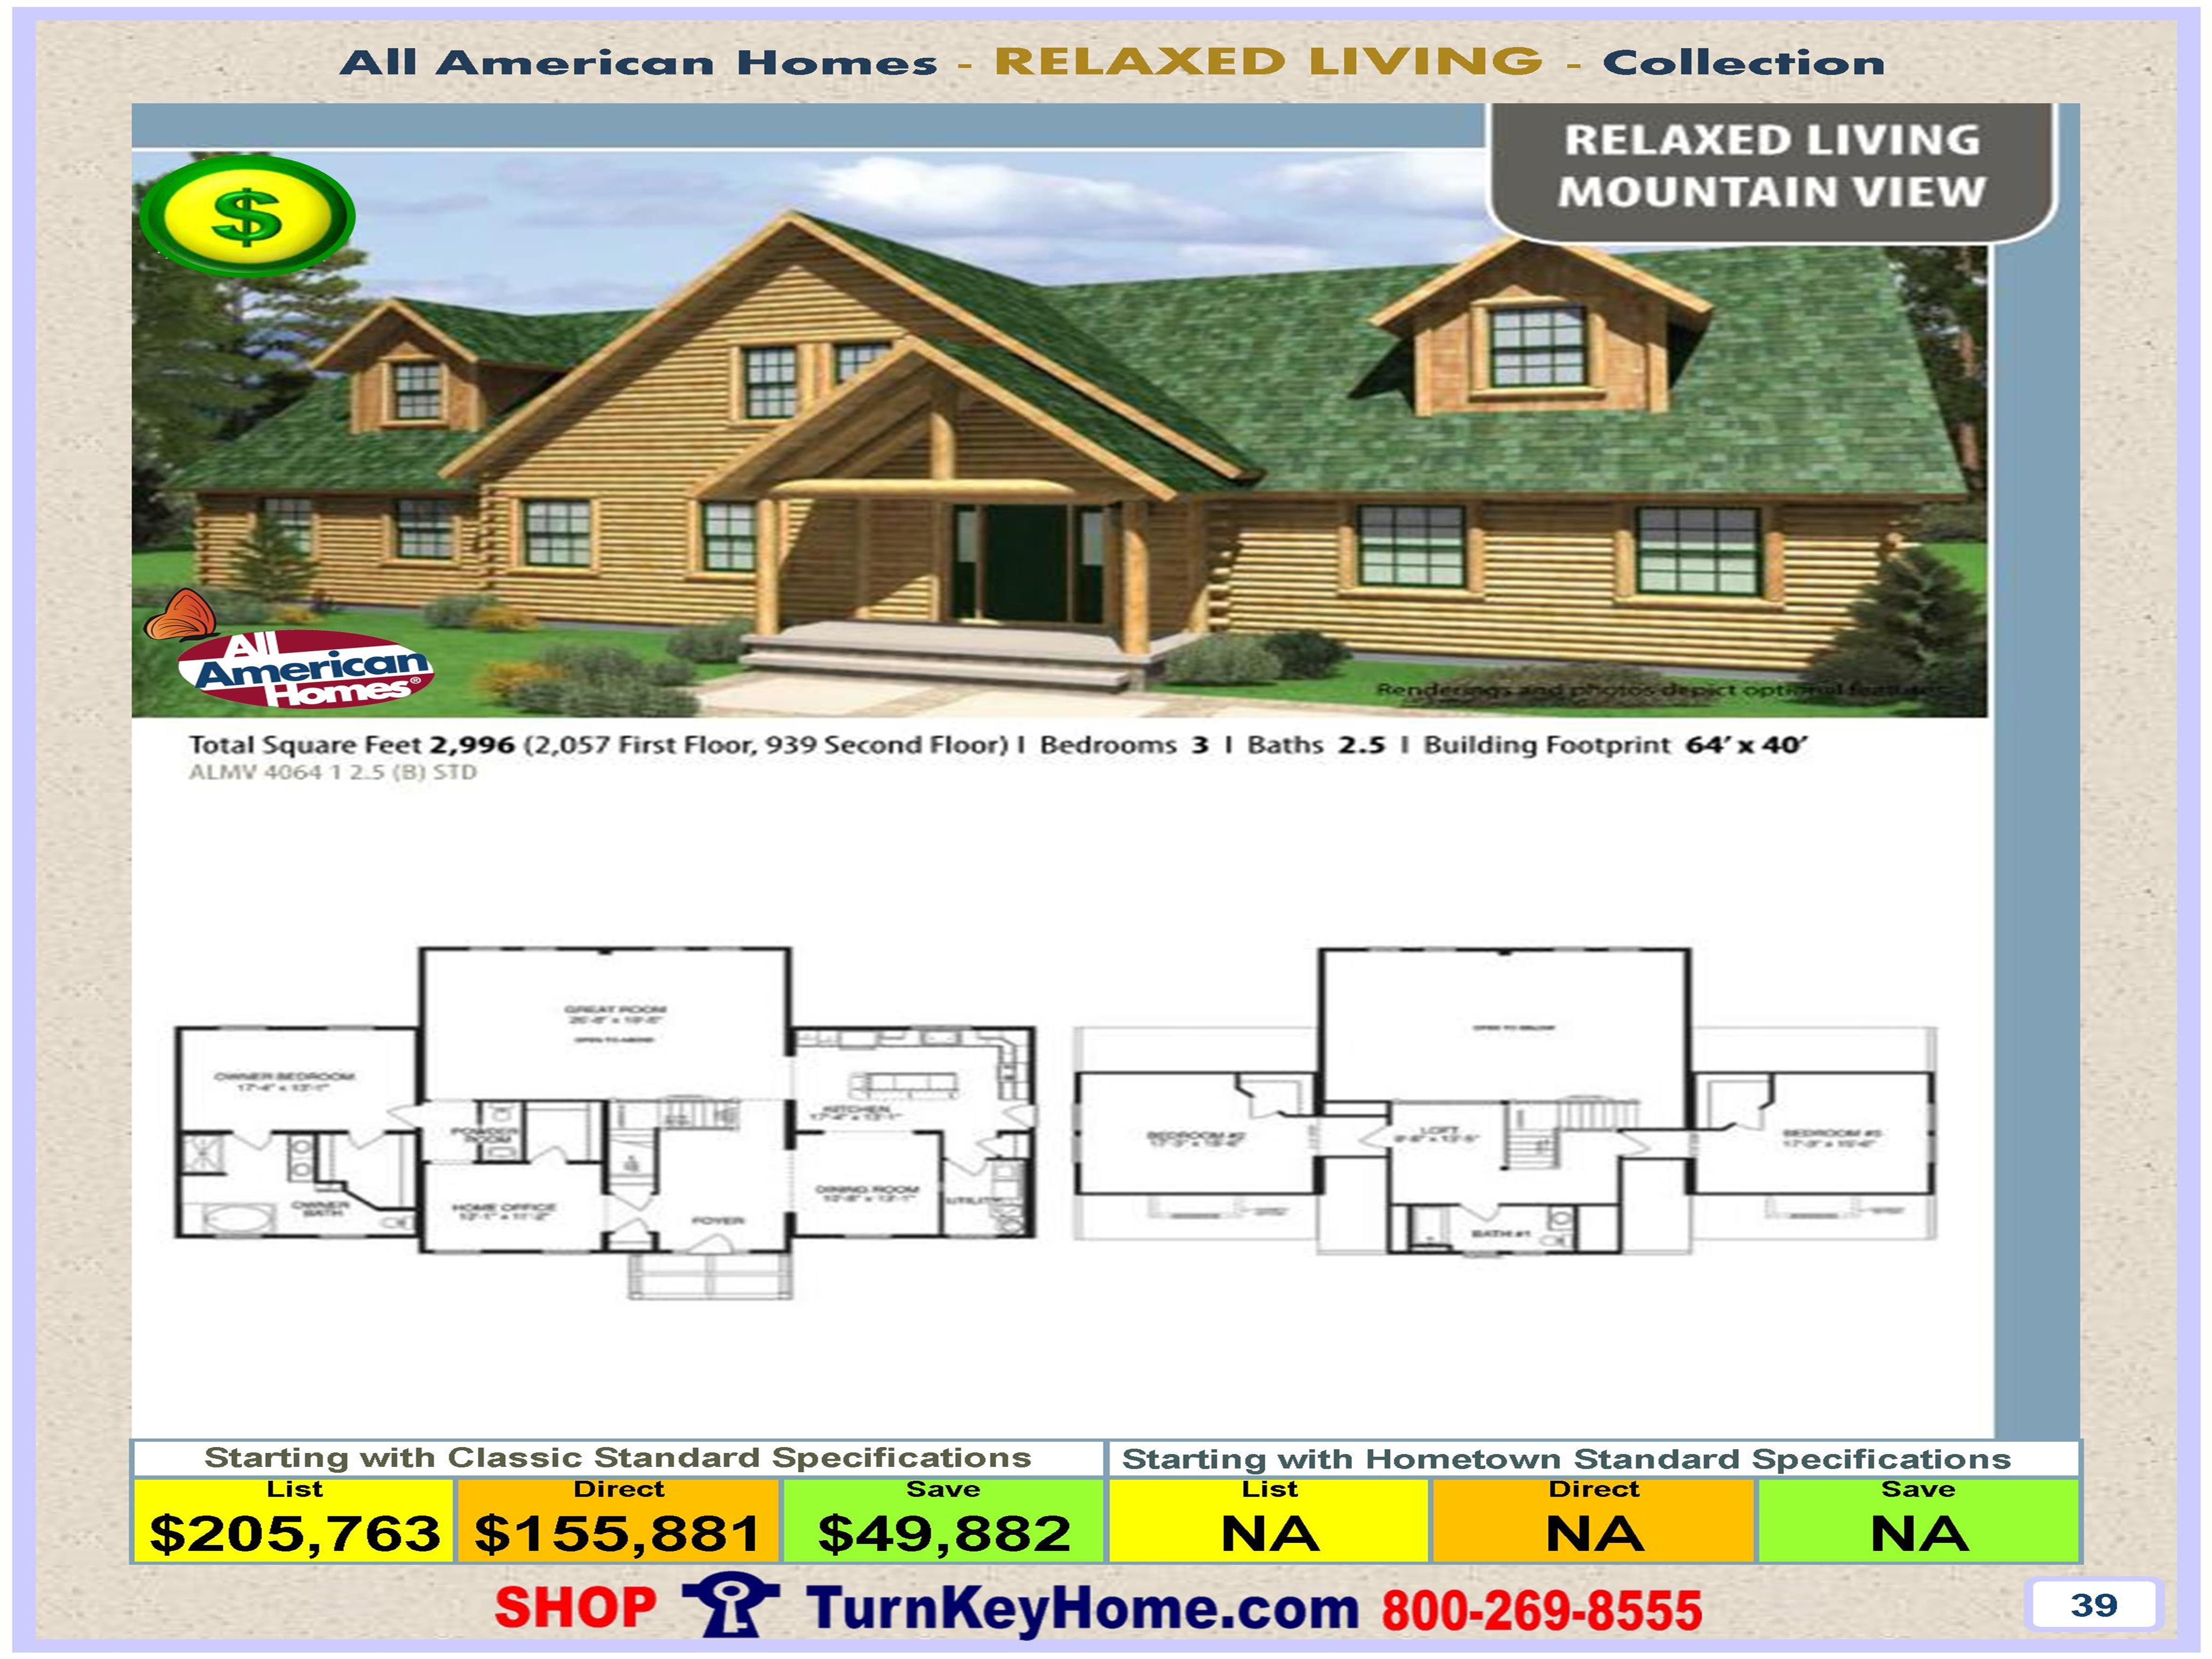 MOUNTAIN VIEW All American Modular Home Home Relaxed Living Collection Plan  Price